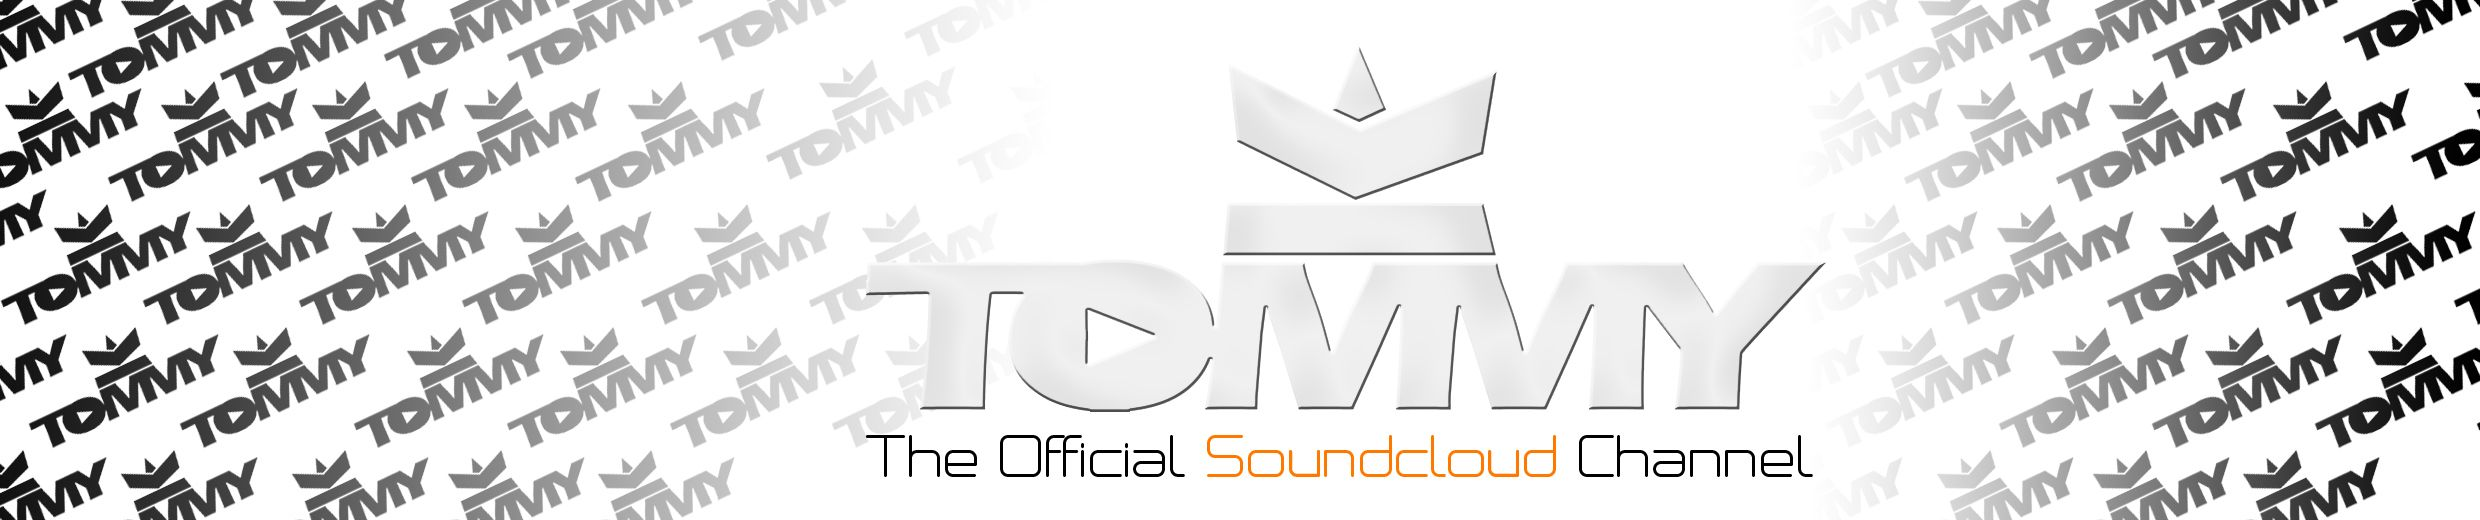 Tommy K  - Extended Mixes & Edits Pack (Feb  2017) | Free